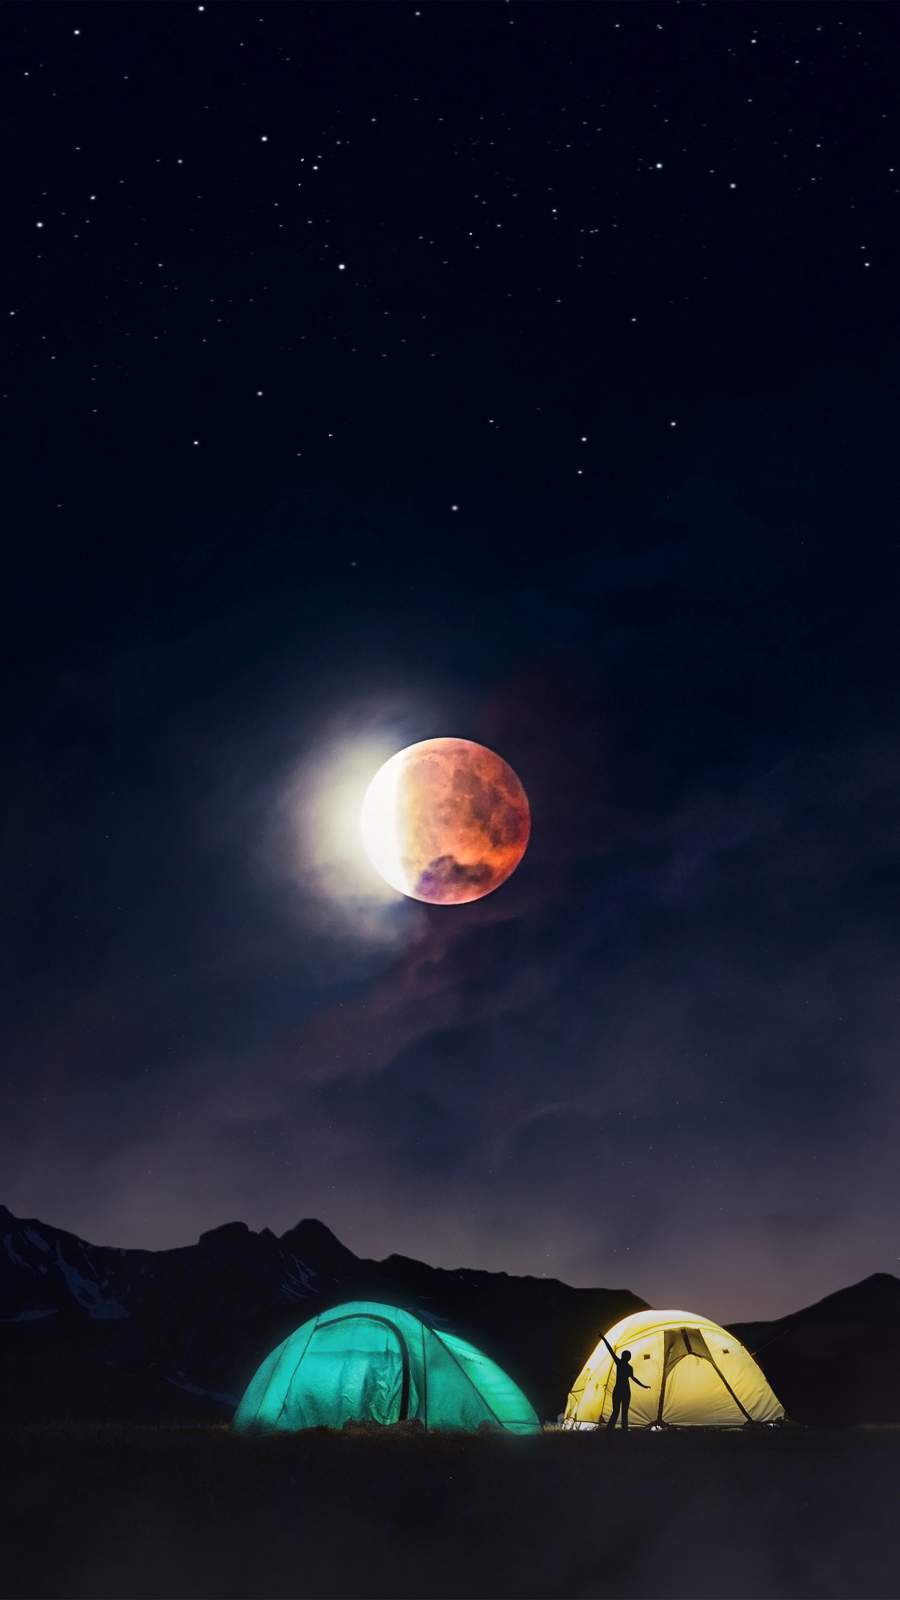 Night Camping iPhone Wallpaper